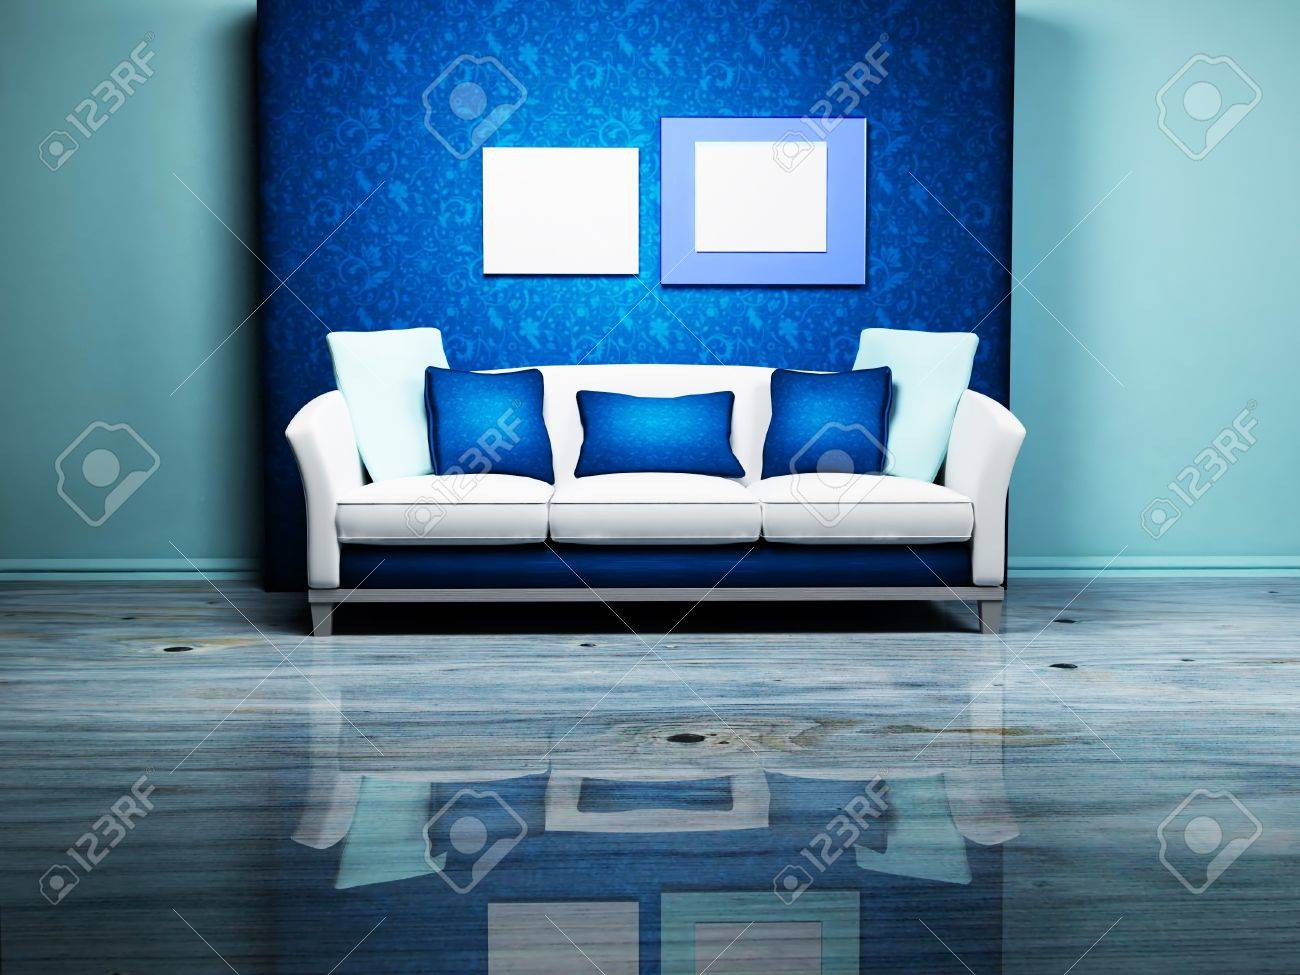 Modern Interior Design With A Nice Sofa And The Pictures On.. Stock ...